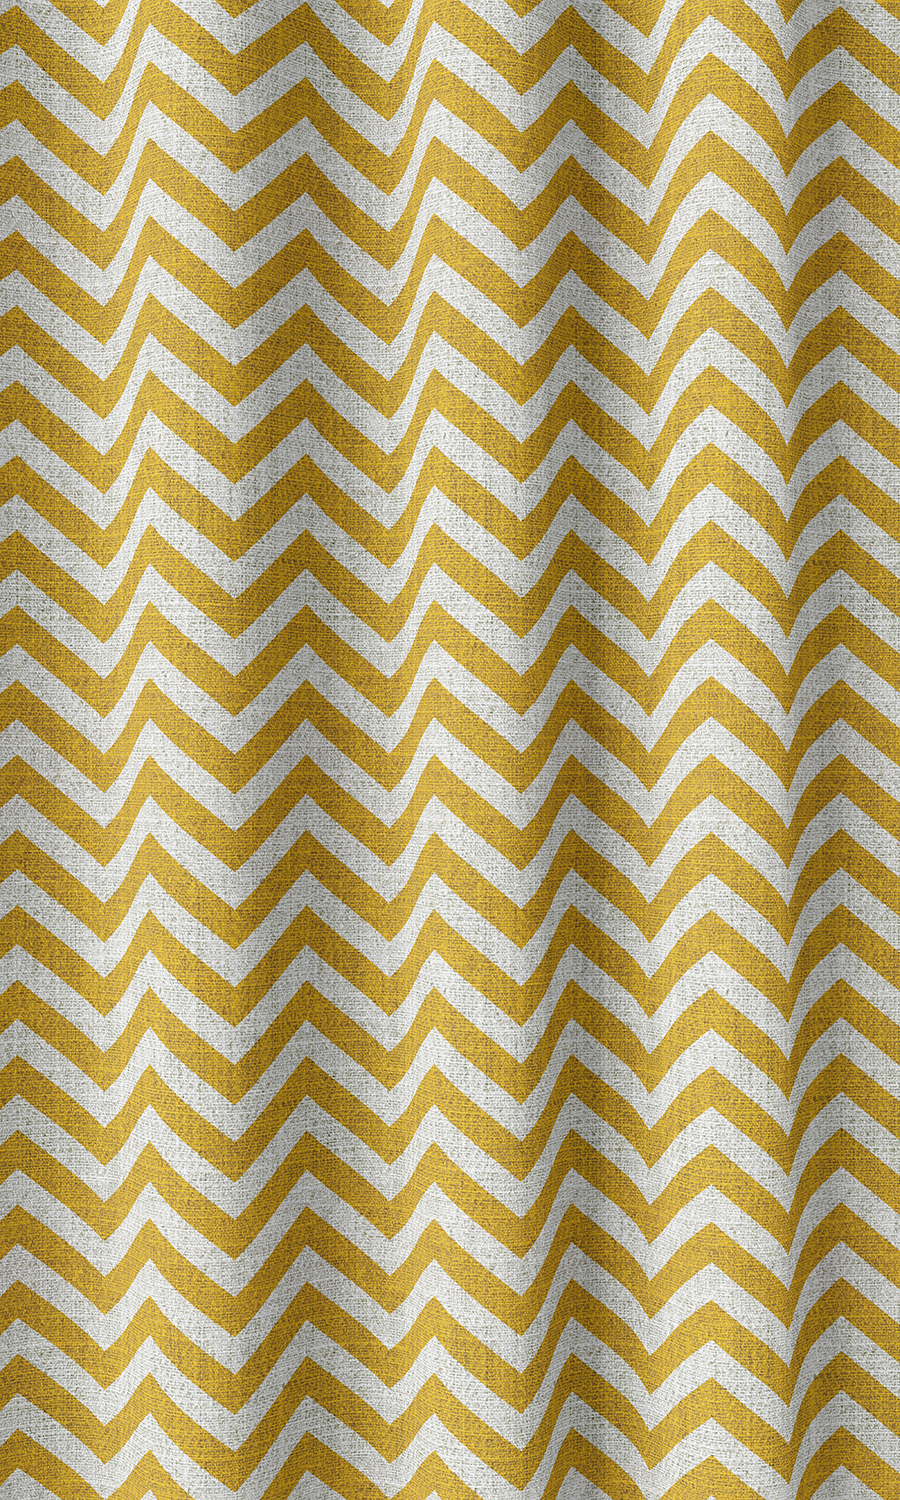 Yellow Zig Zag custom Drapery & Roman Blinds